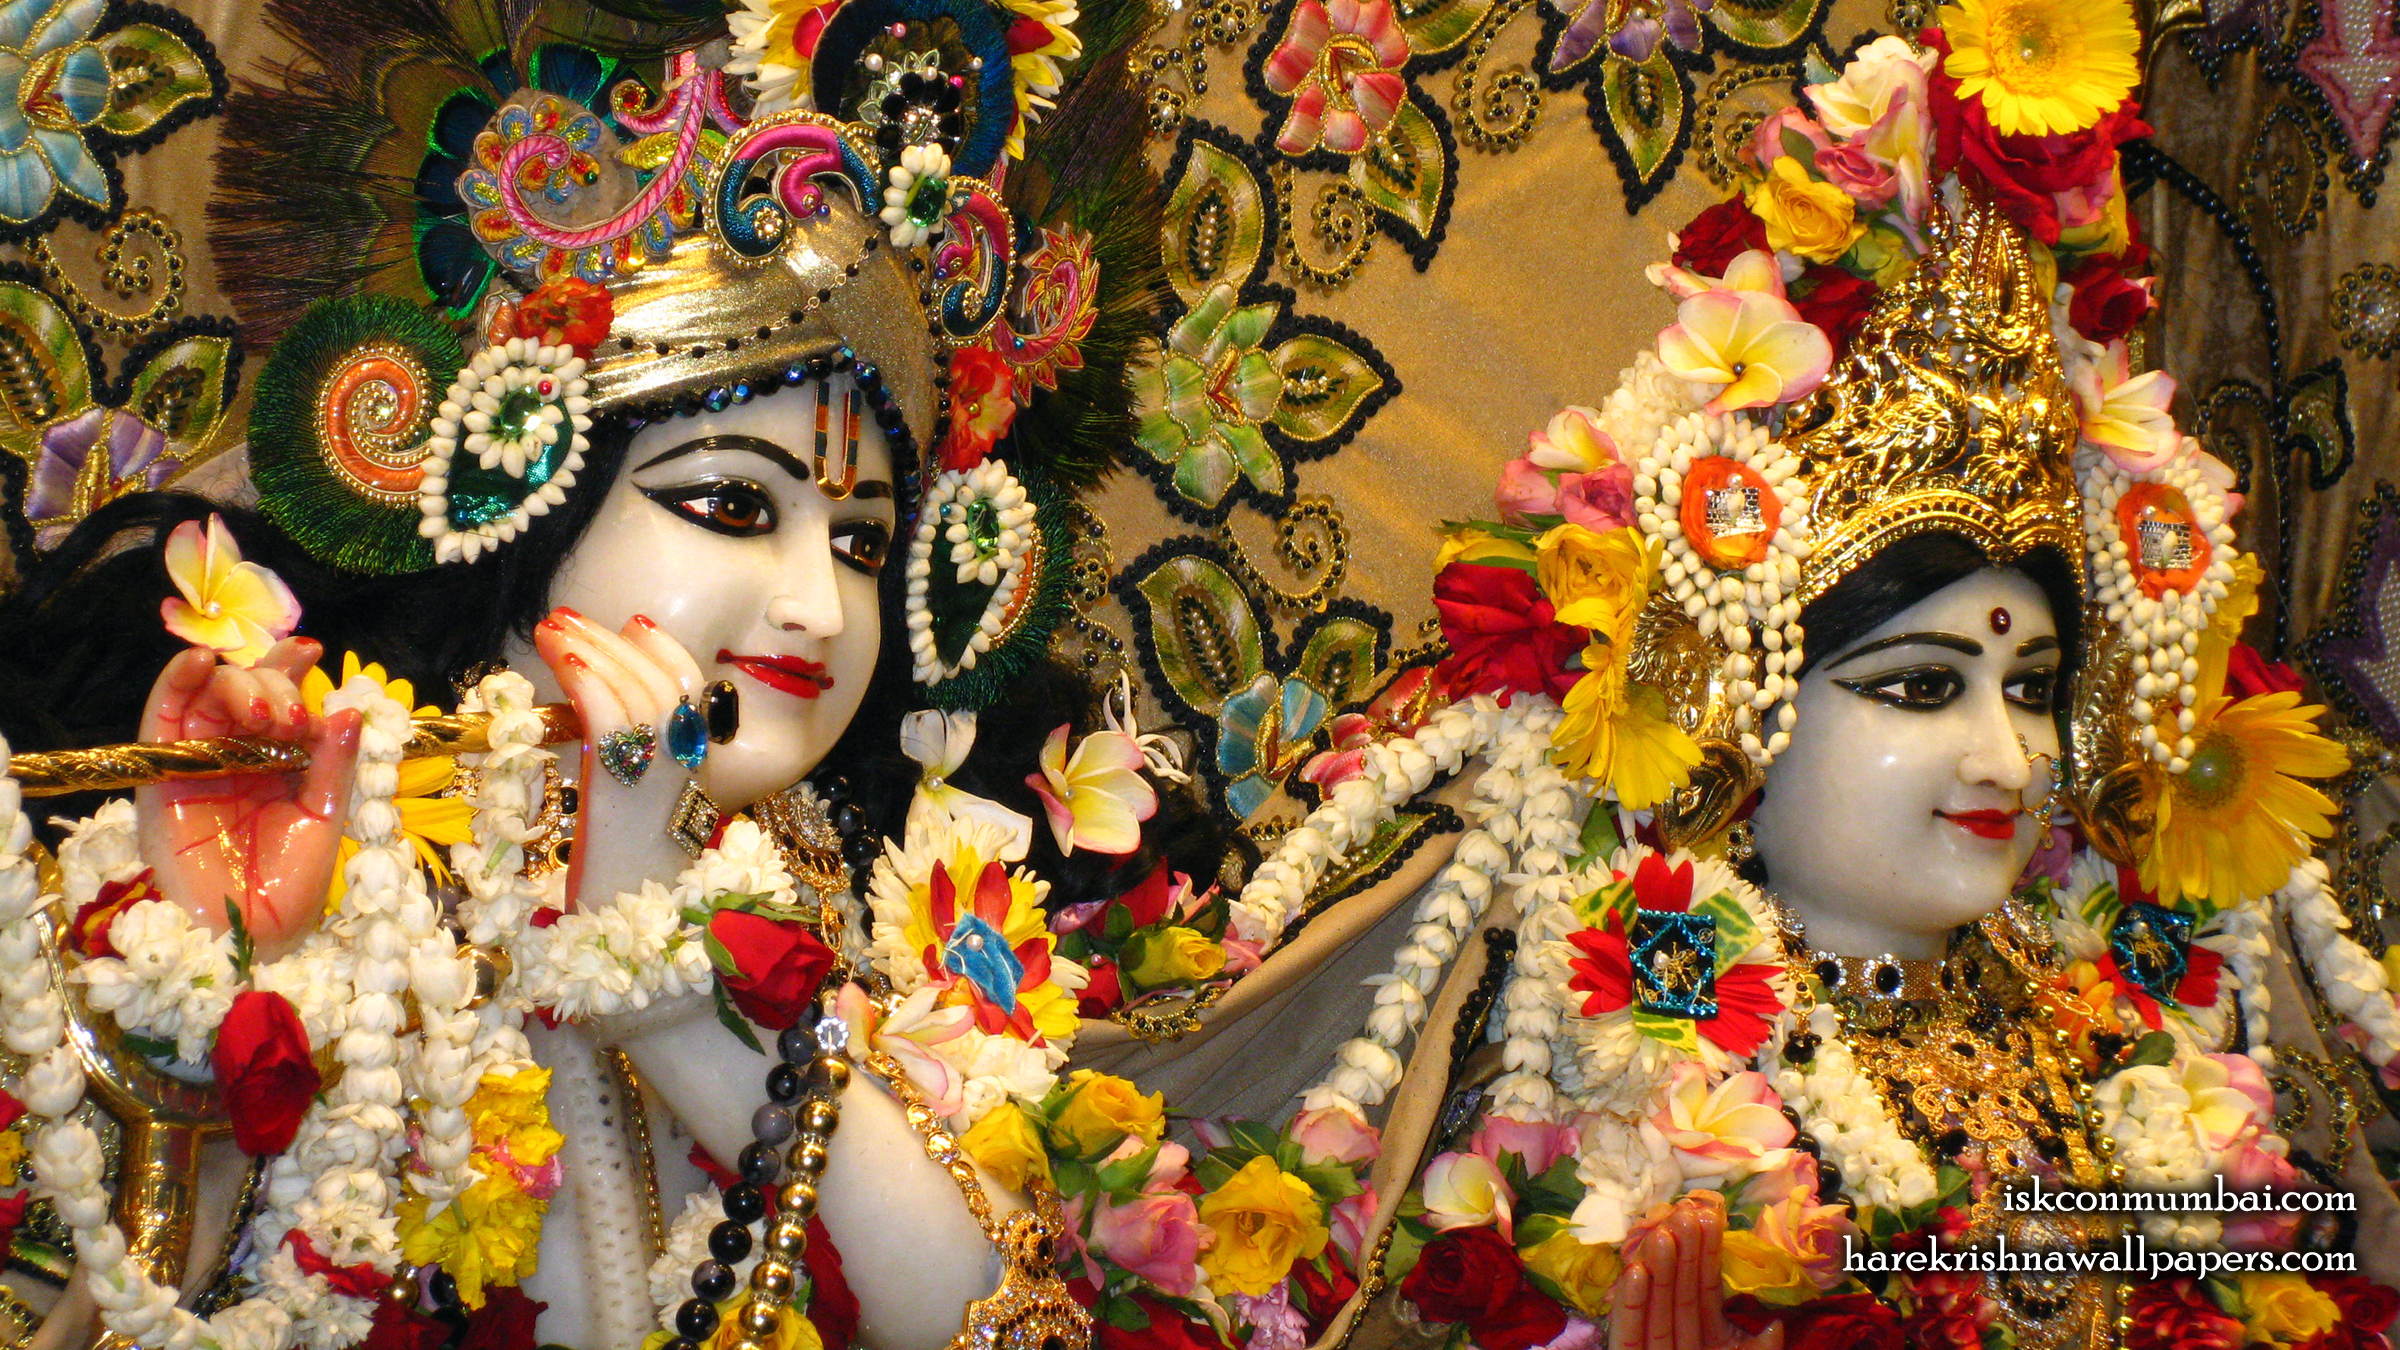 Sri Sri Radha Rasabihari Close up Wallpaper (025) Size 2400x1350 Download